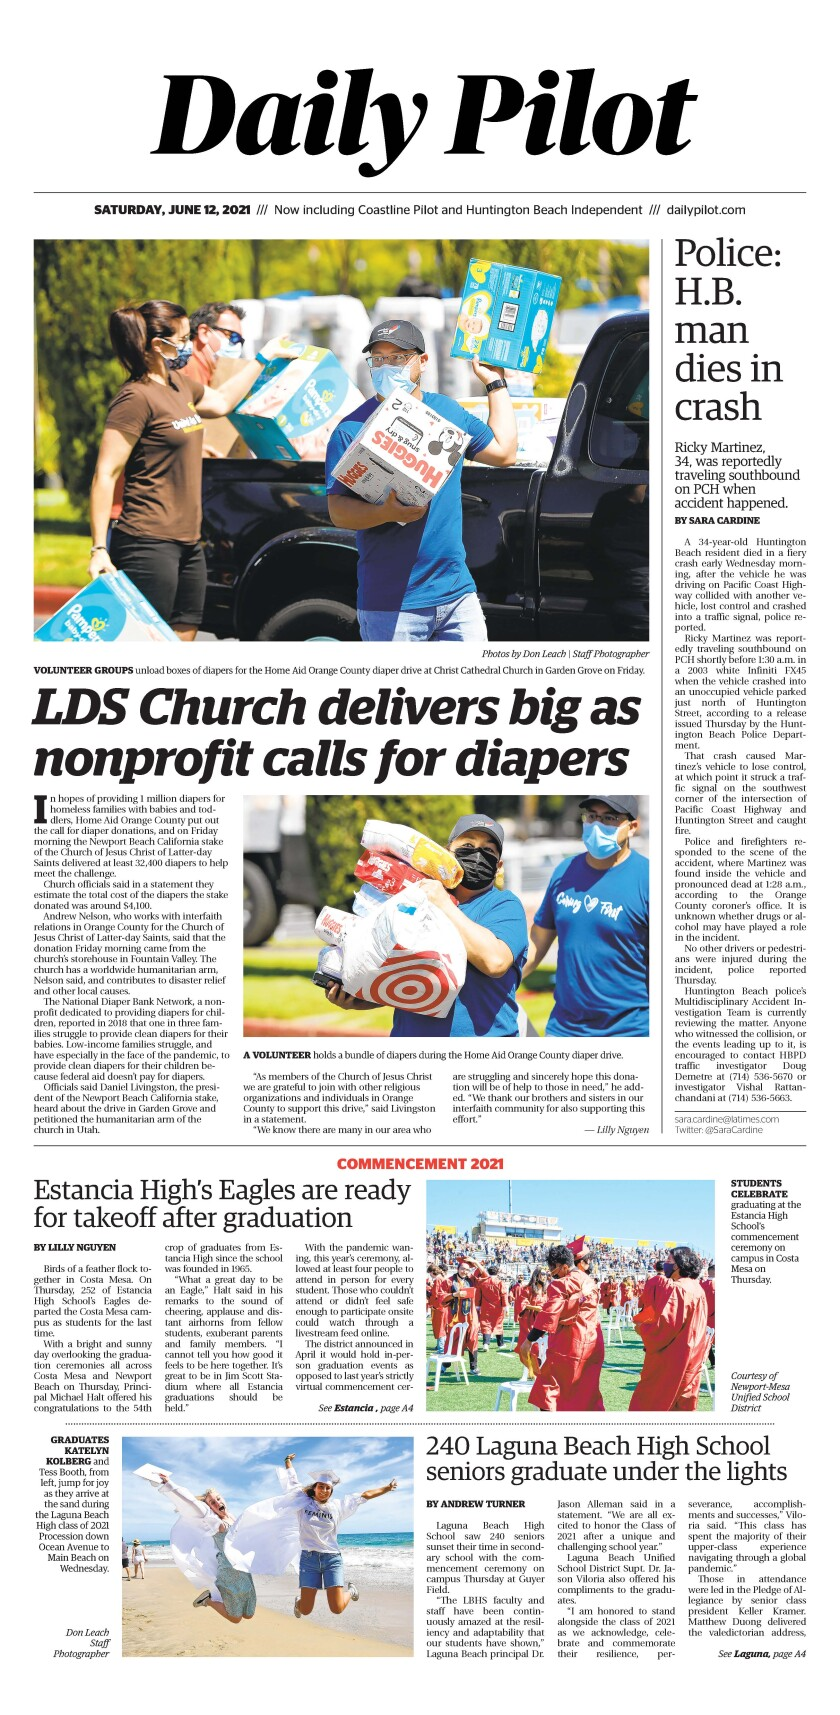 Front page of Daily Pilot e-newspaper for Saturday. June 13, 2021.